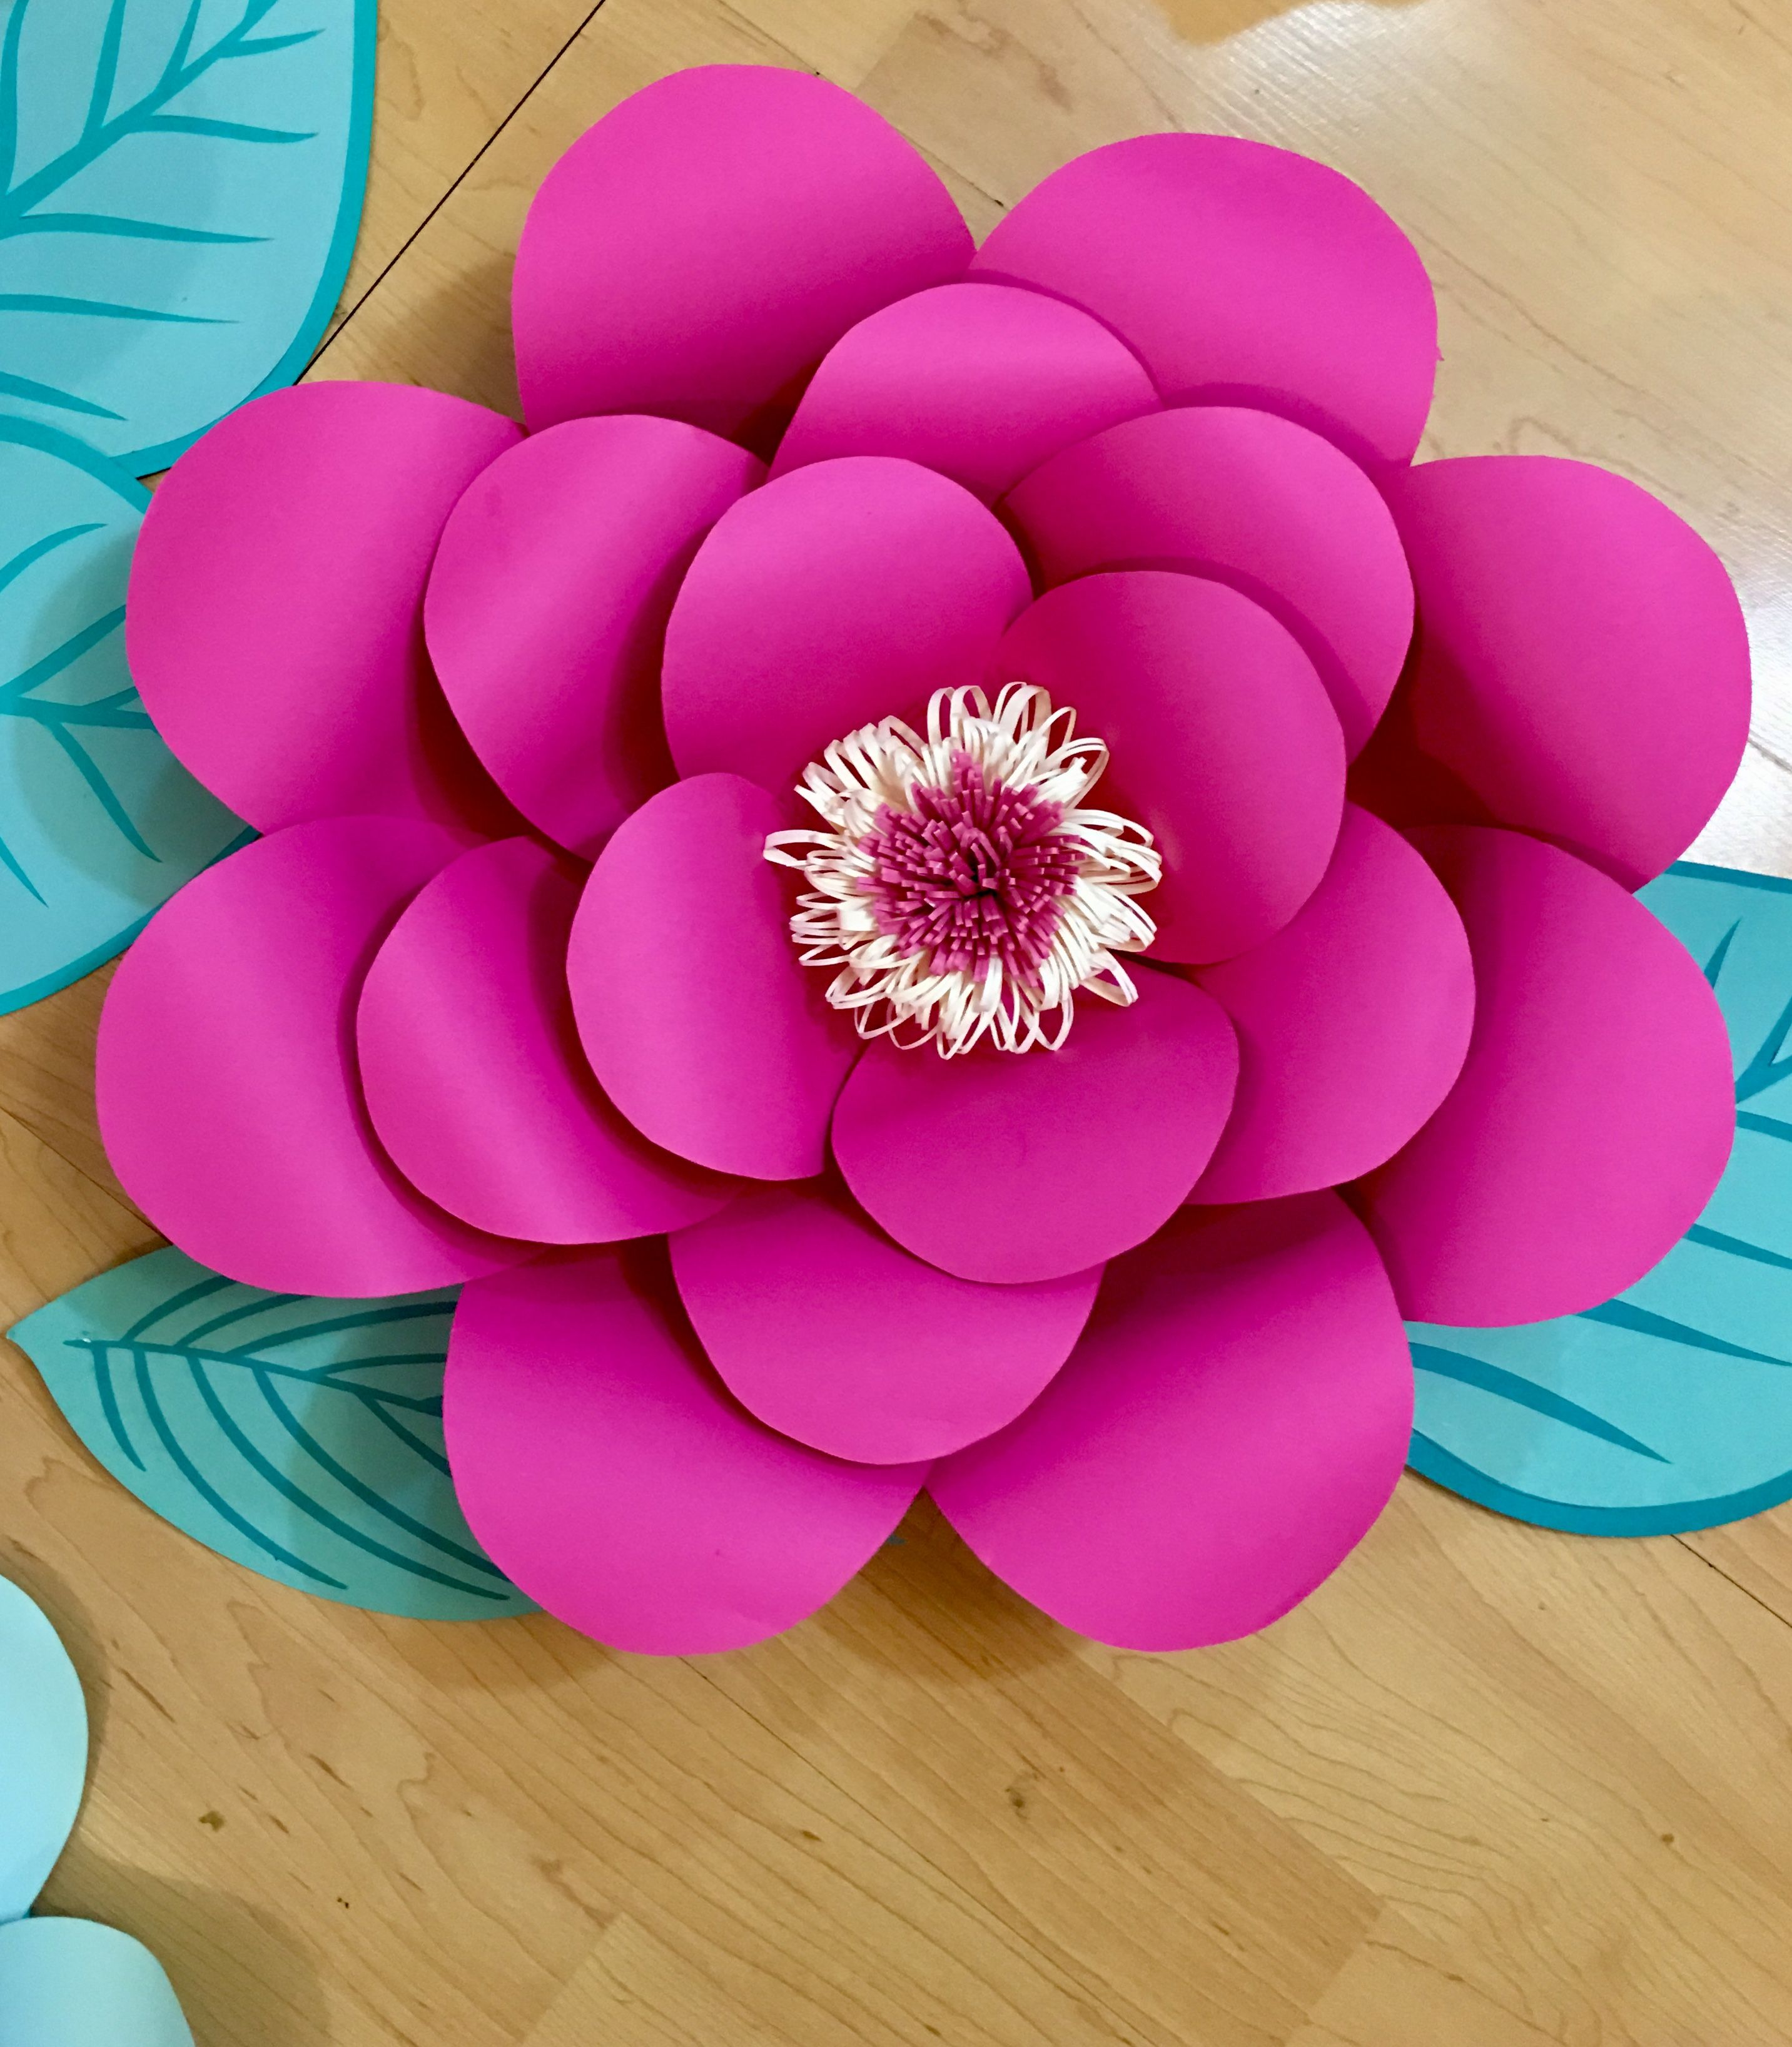 Giant Paper Flowers Made By Marnie Kirsch Large Paper Flowers